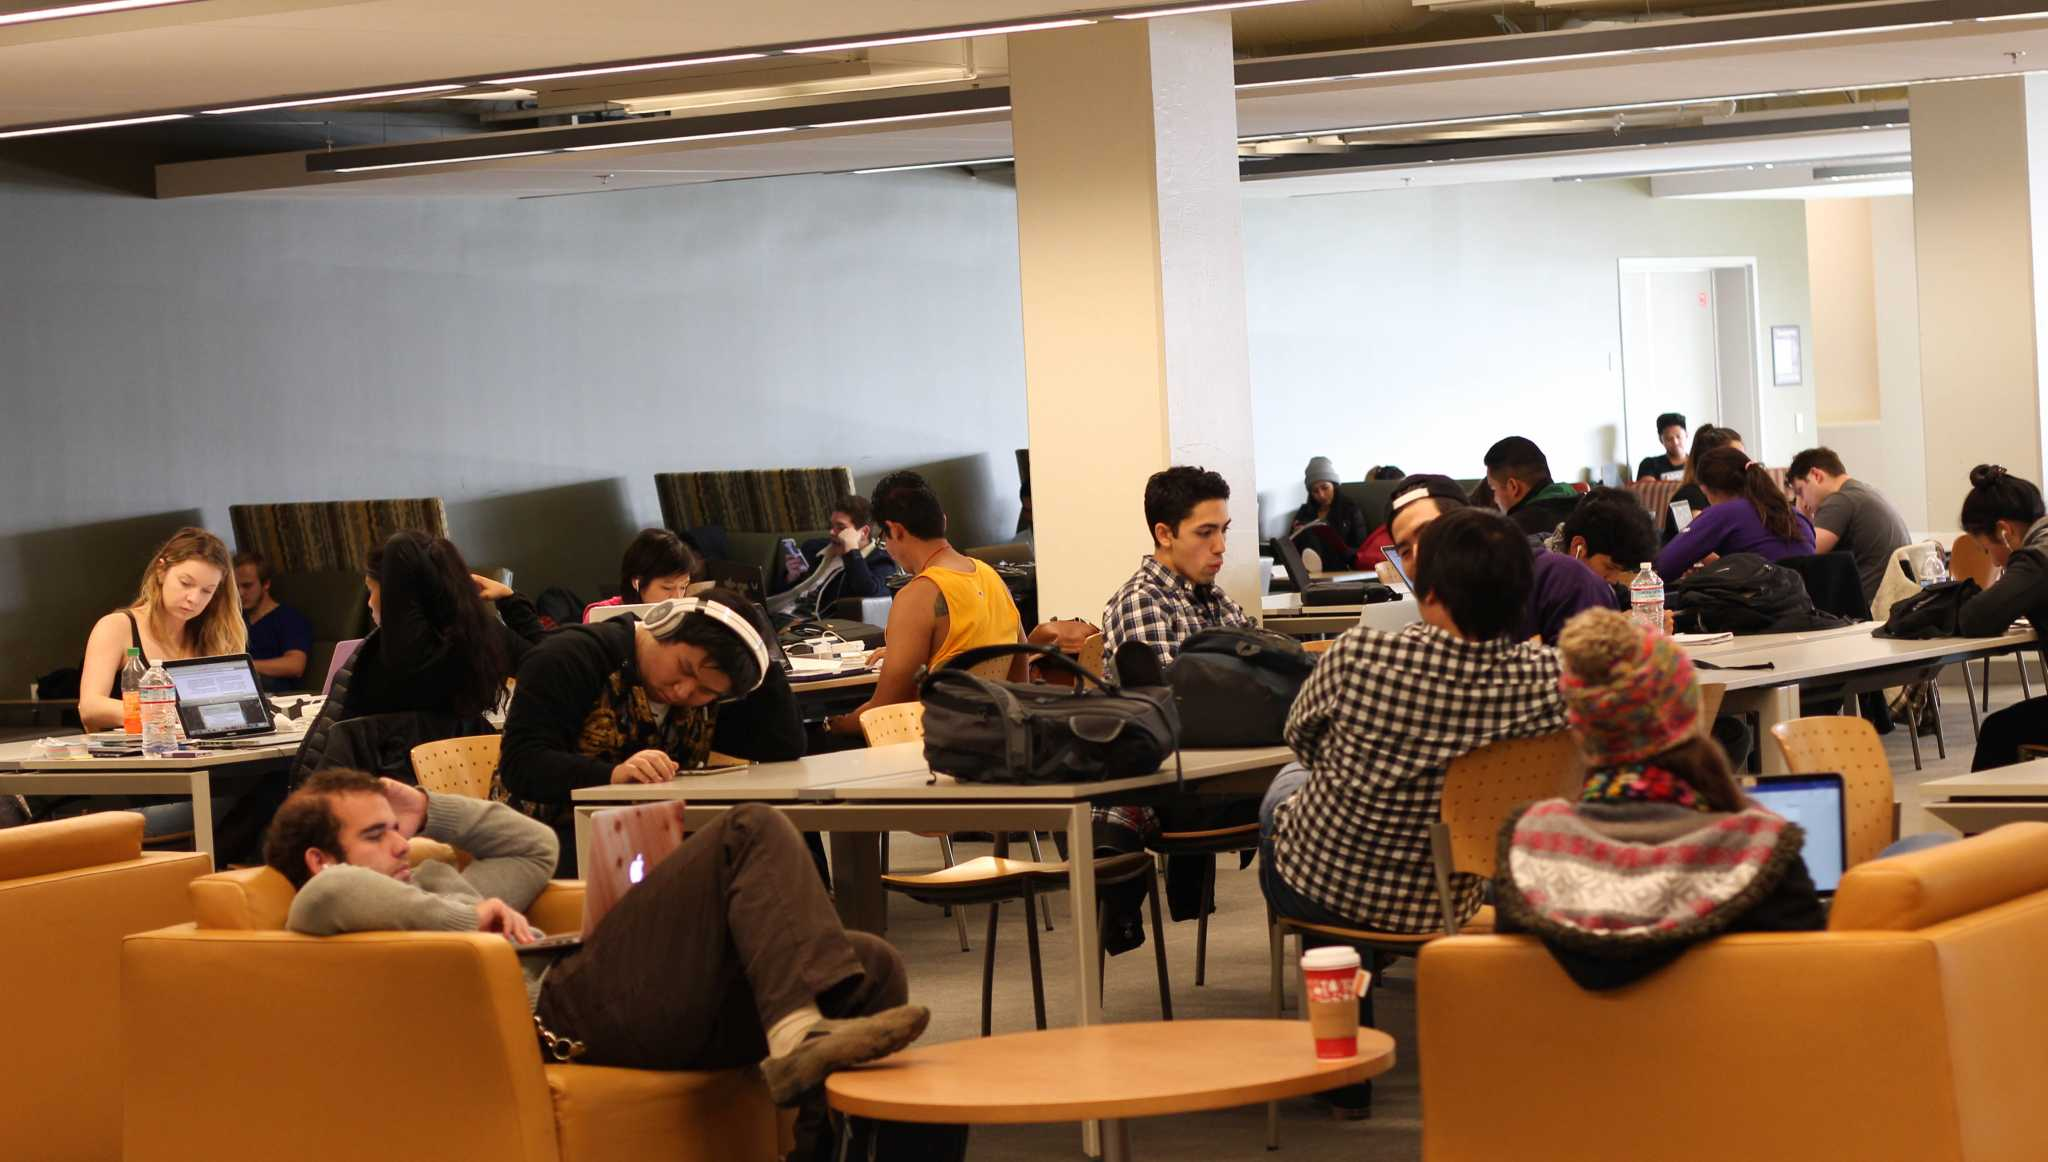 SF State students studying at the J Paul Leonard Library Monday Dec. 14, 2015 (Alex Kofman / Xpress)